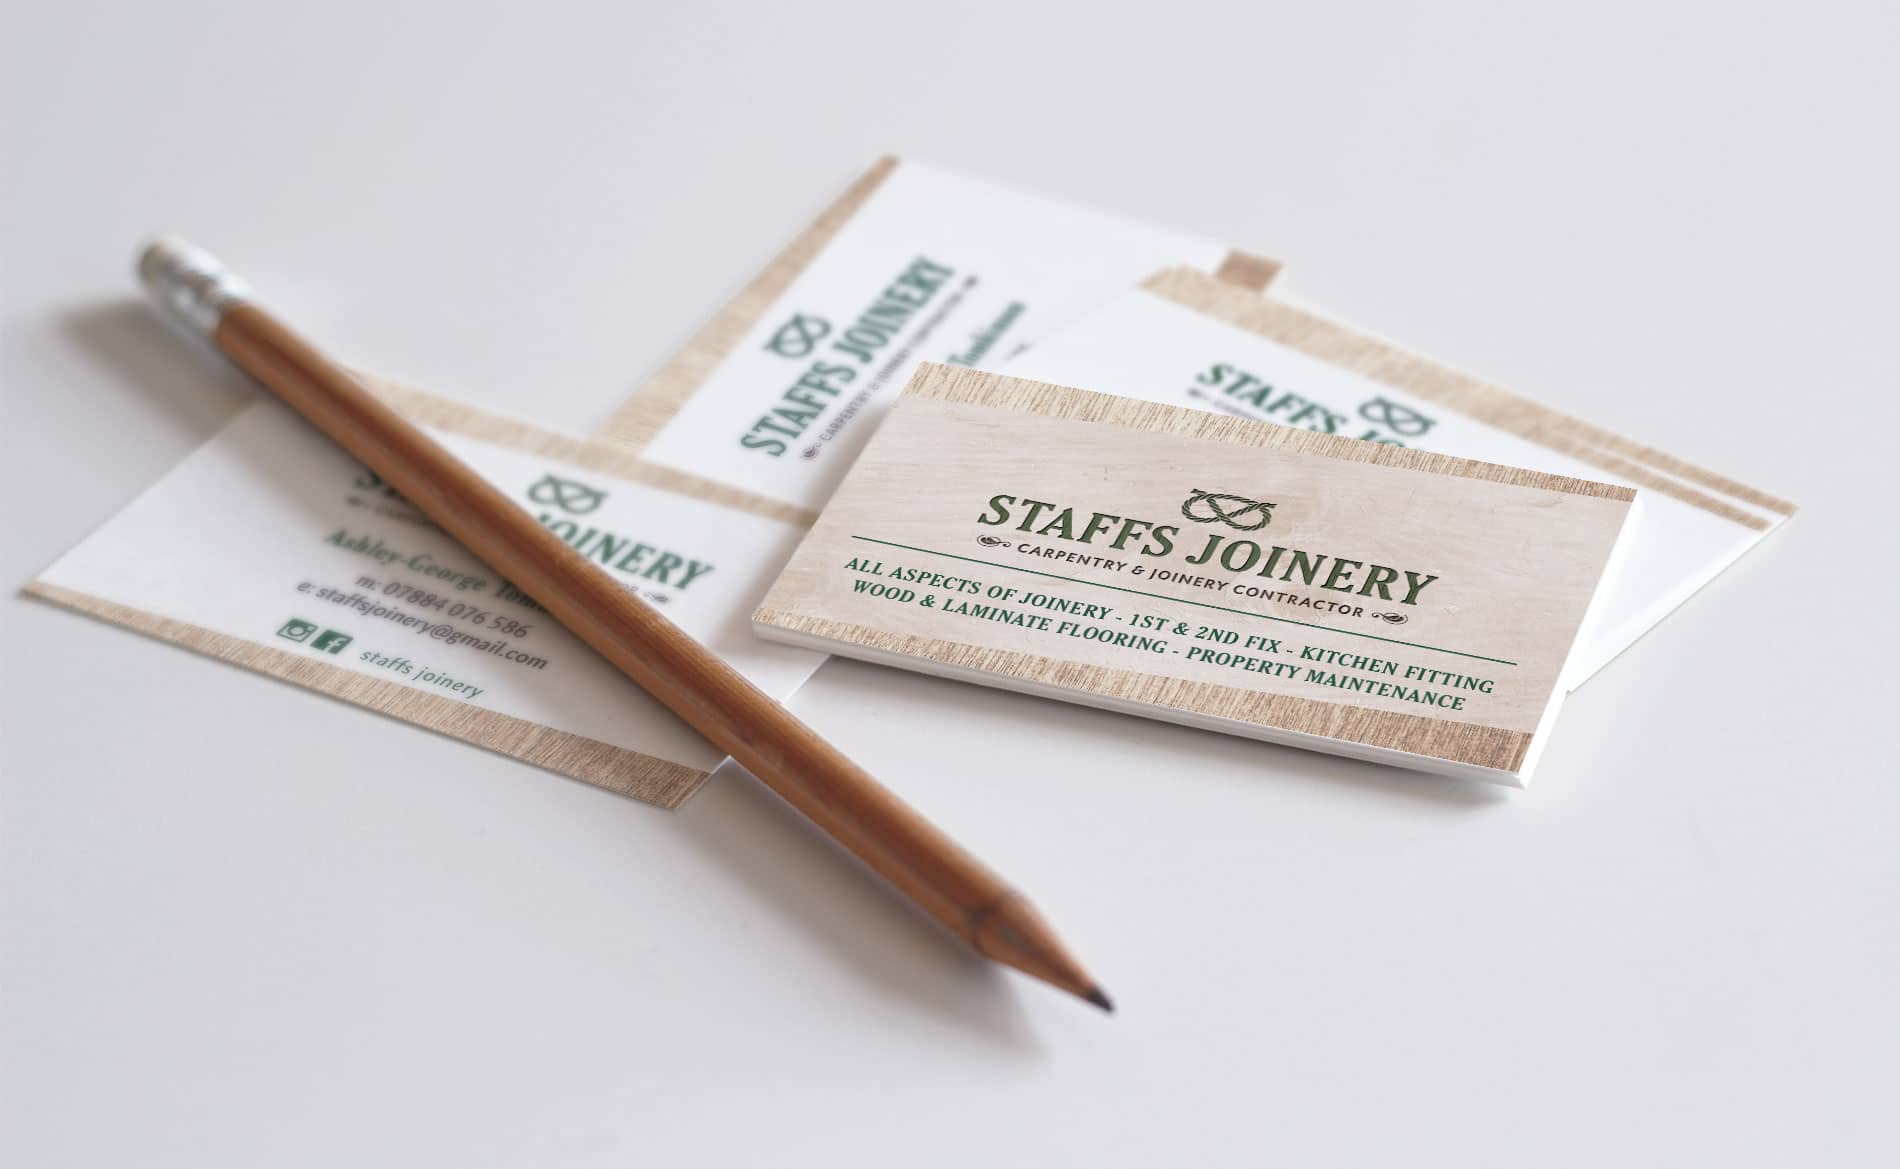 Graphic Design and Branding Services Staffs Joinery Business Card Design